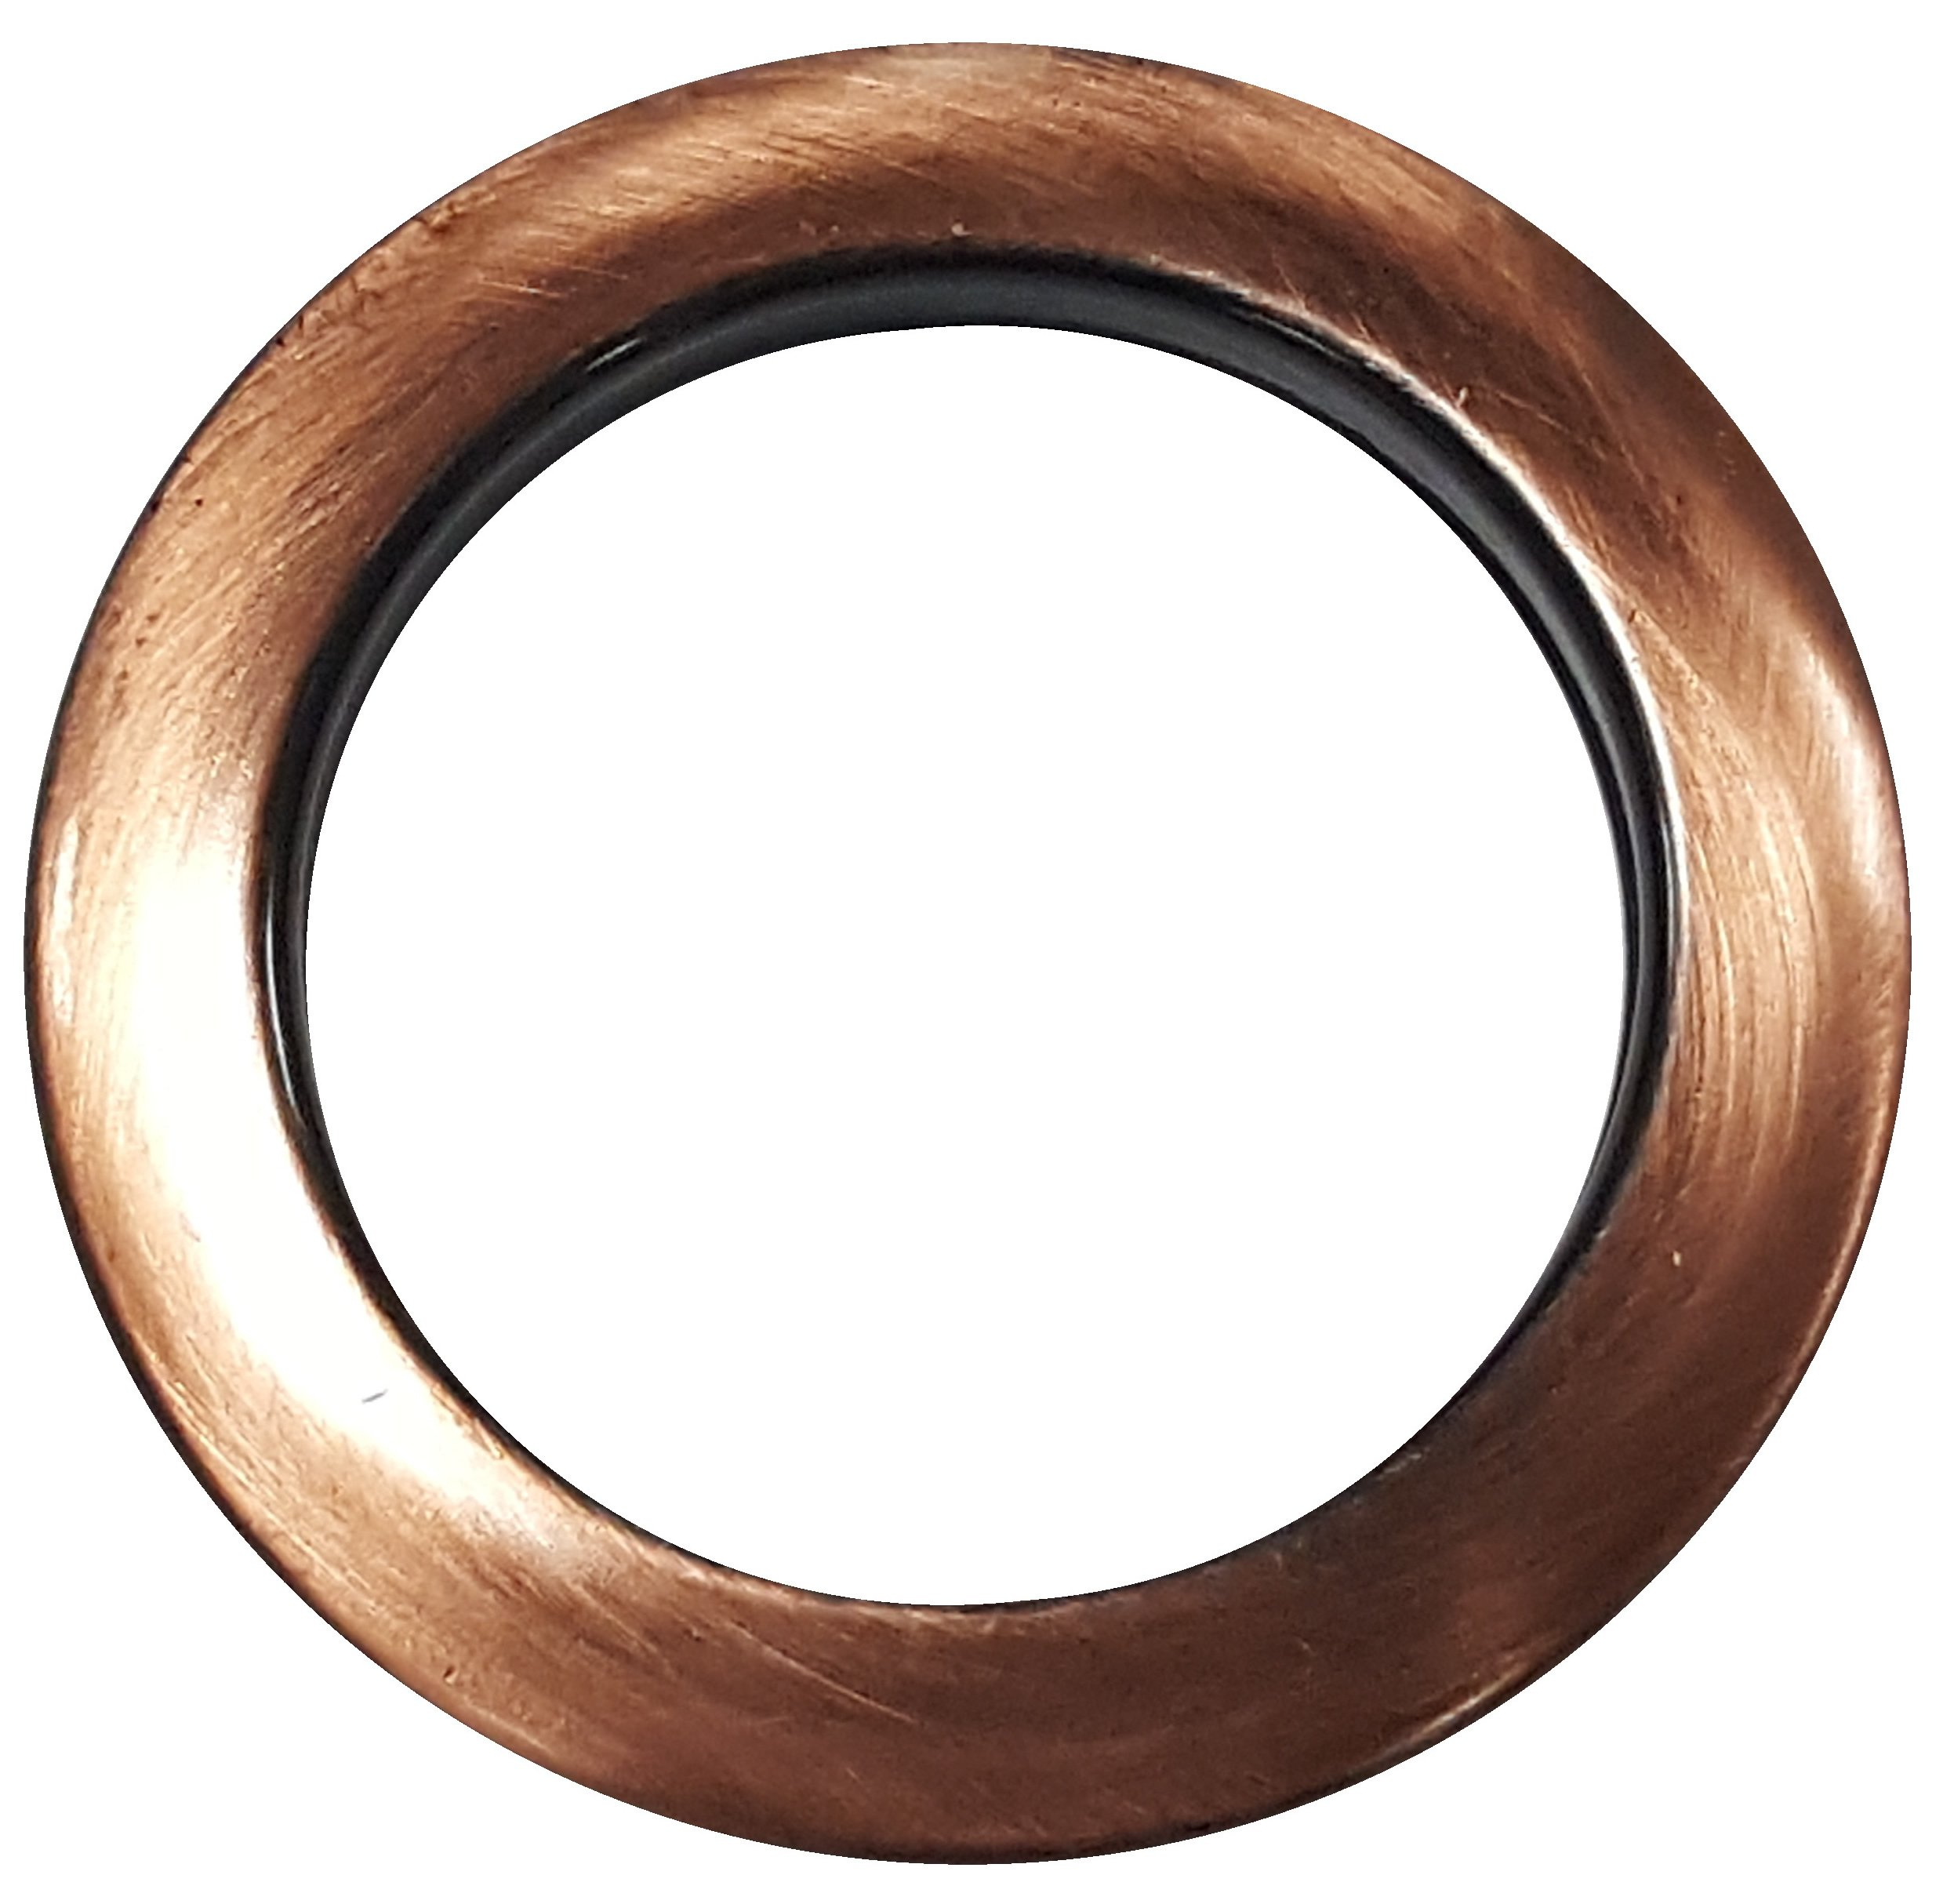 MICRON PLASTIC-ROUND CURTAIN GROMMET PLAIN WASHER (40mm) (BRONZE METALLIC)